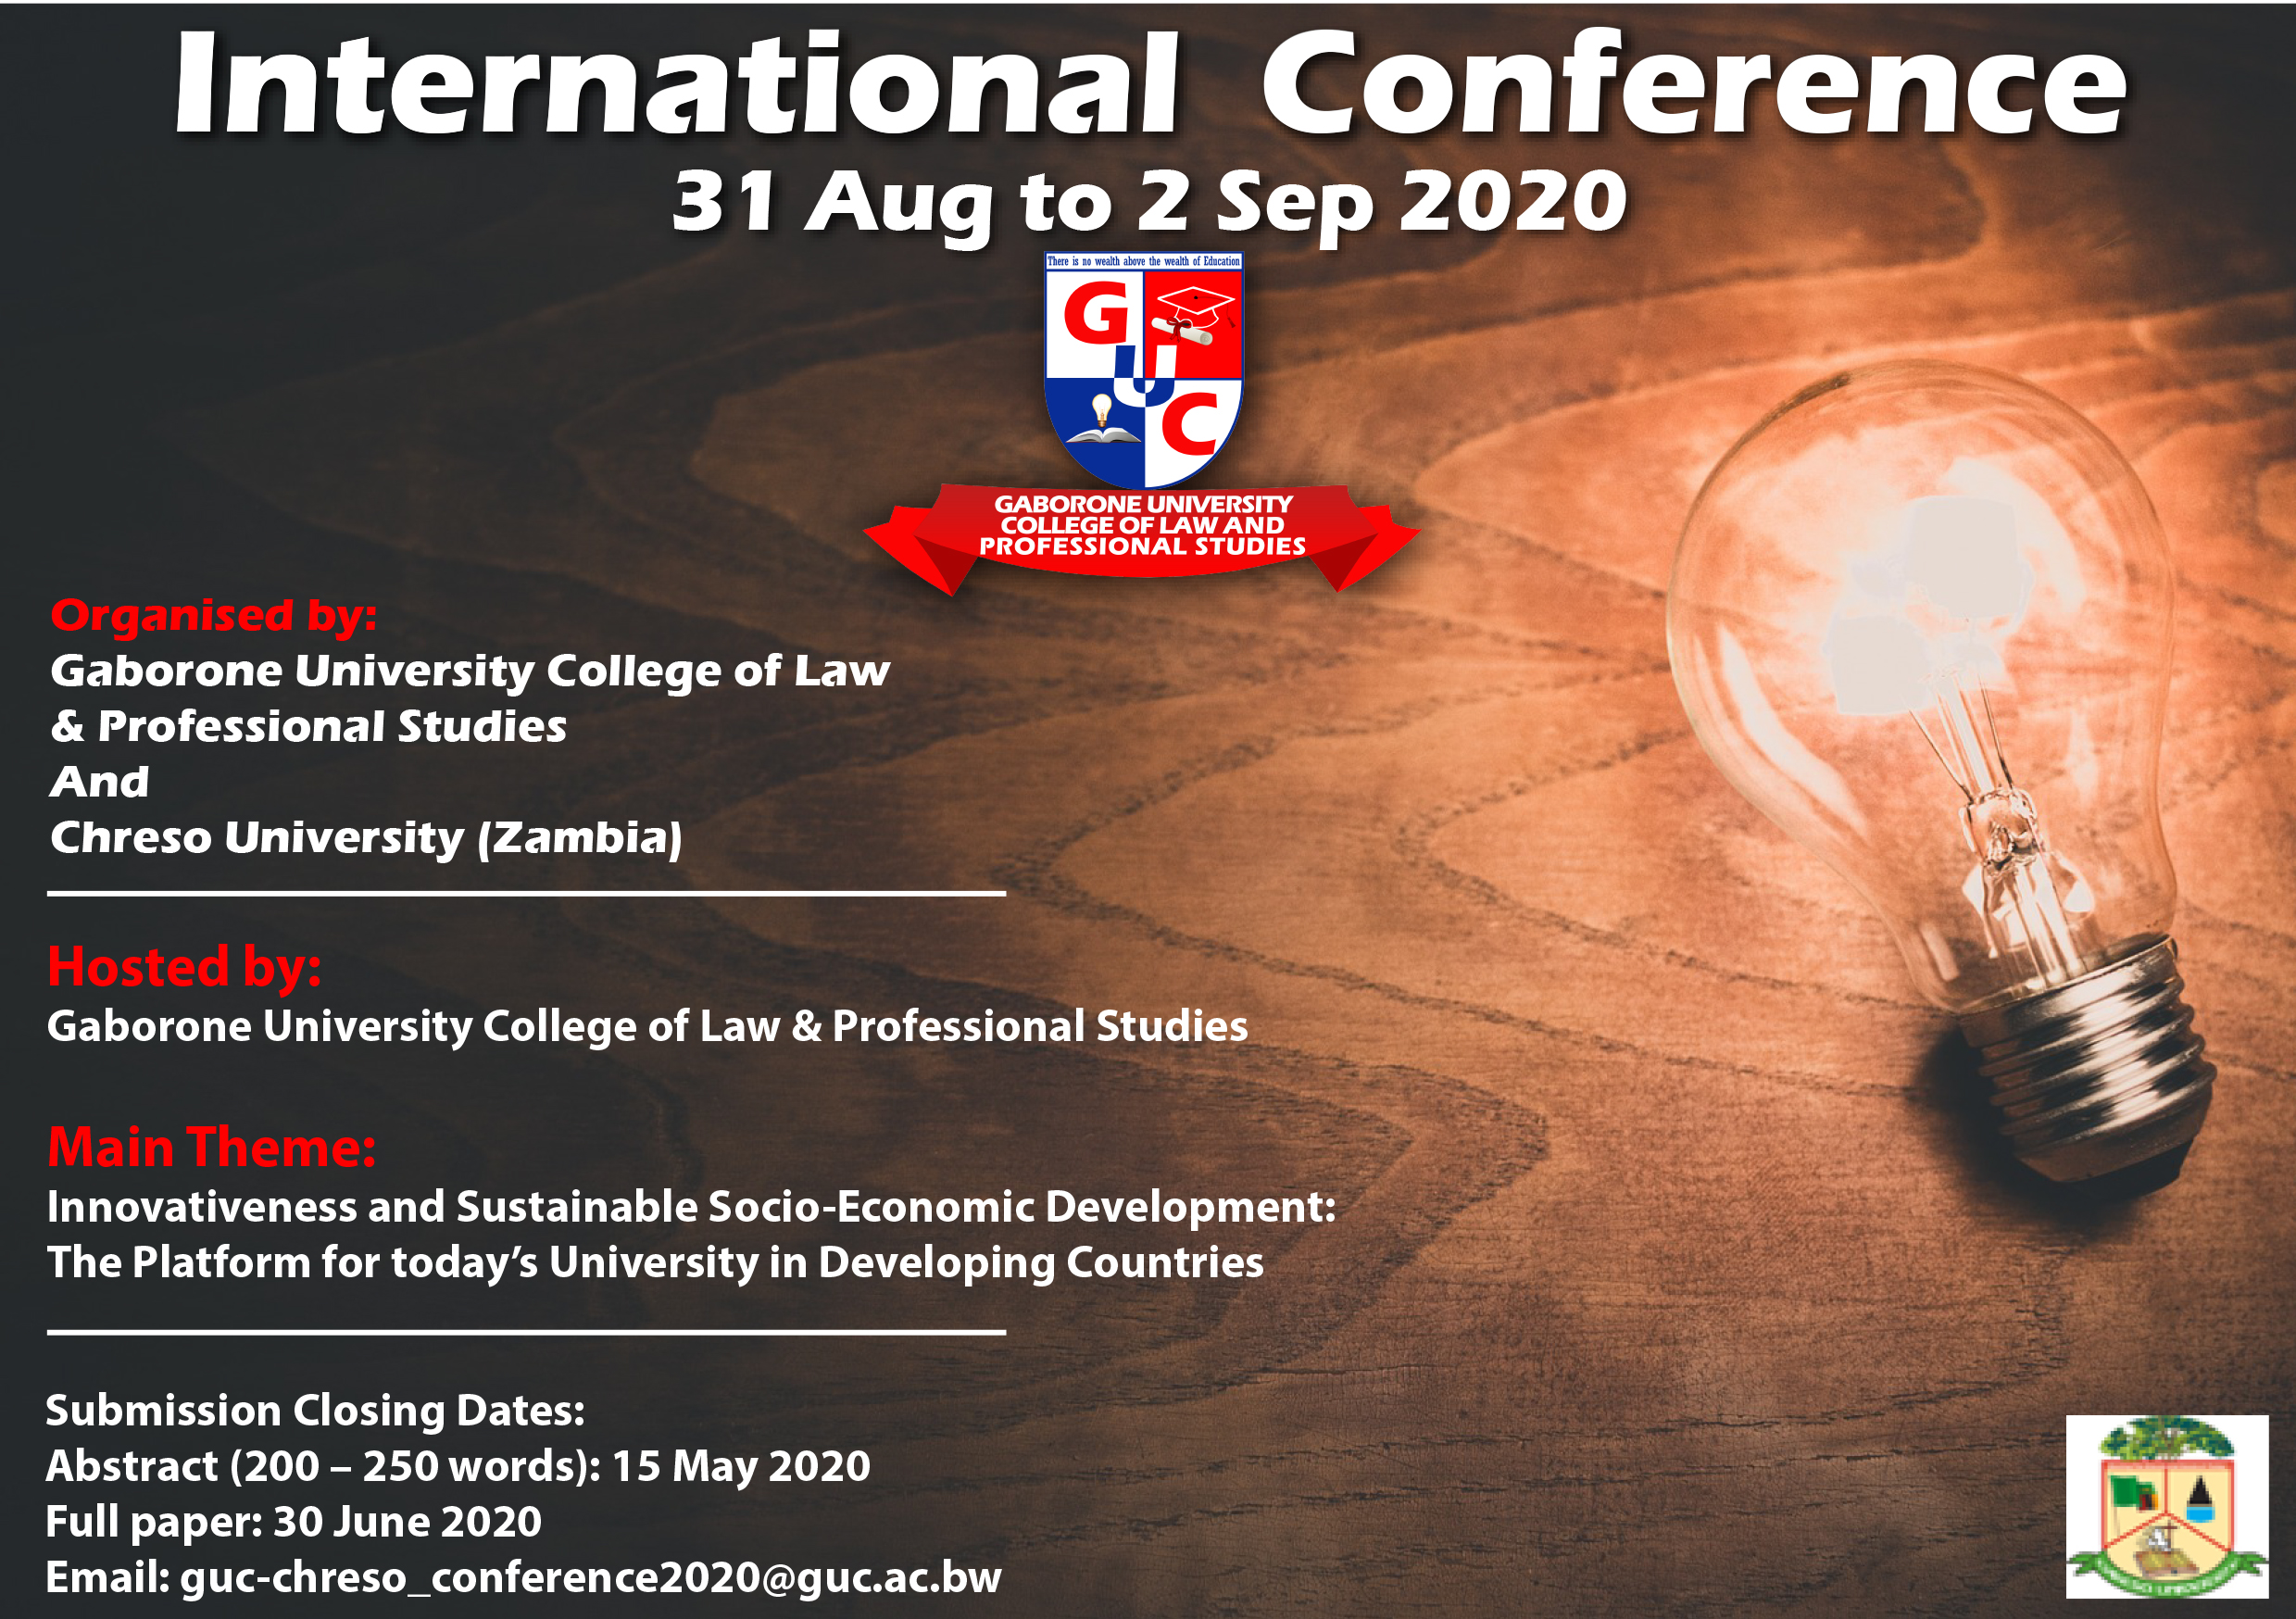 GUC CONFERENCE 2020 C